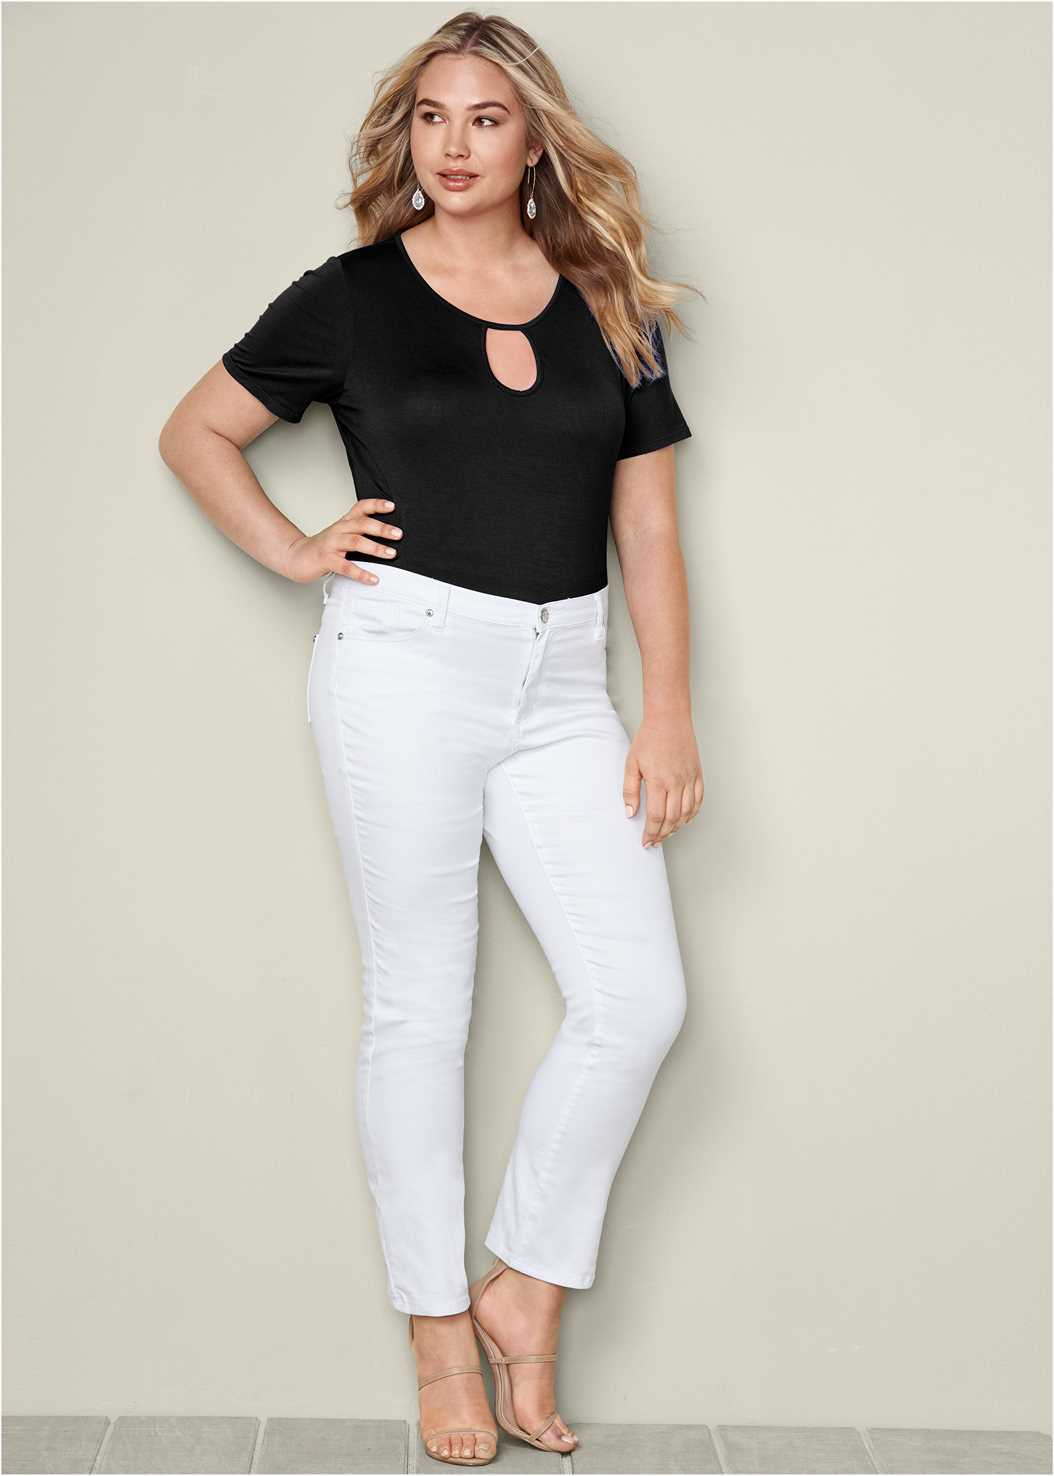 Keyhole Bodysuit,Mid Rise Color Skinny Jeans,High Heel Strappy Sandals